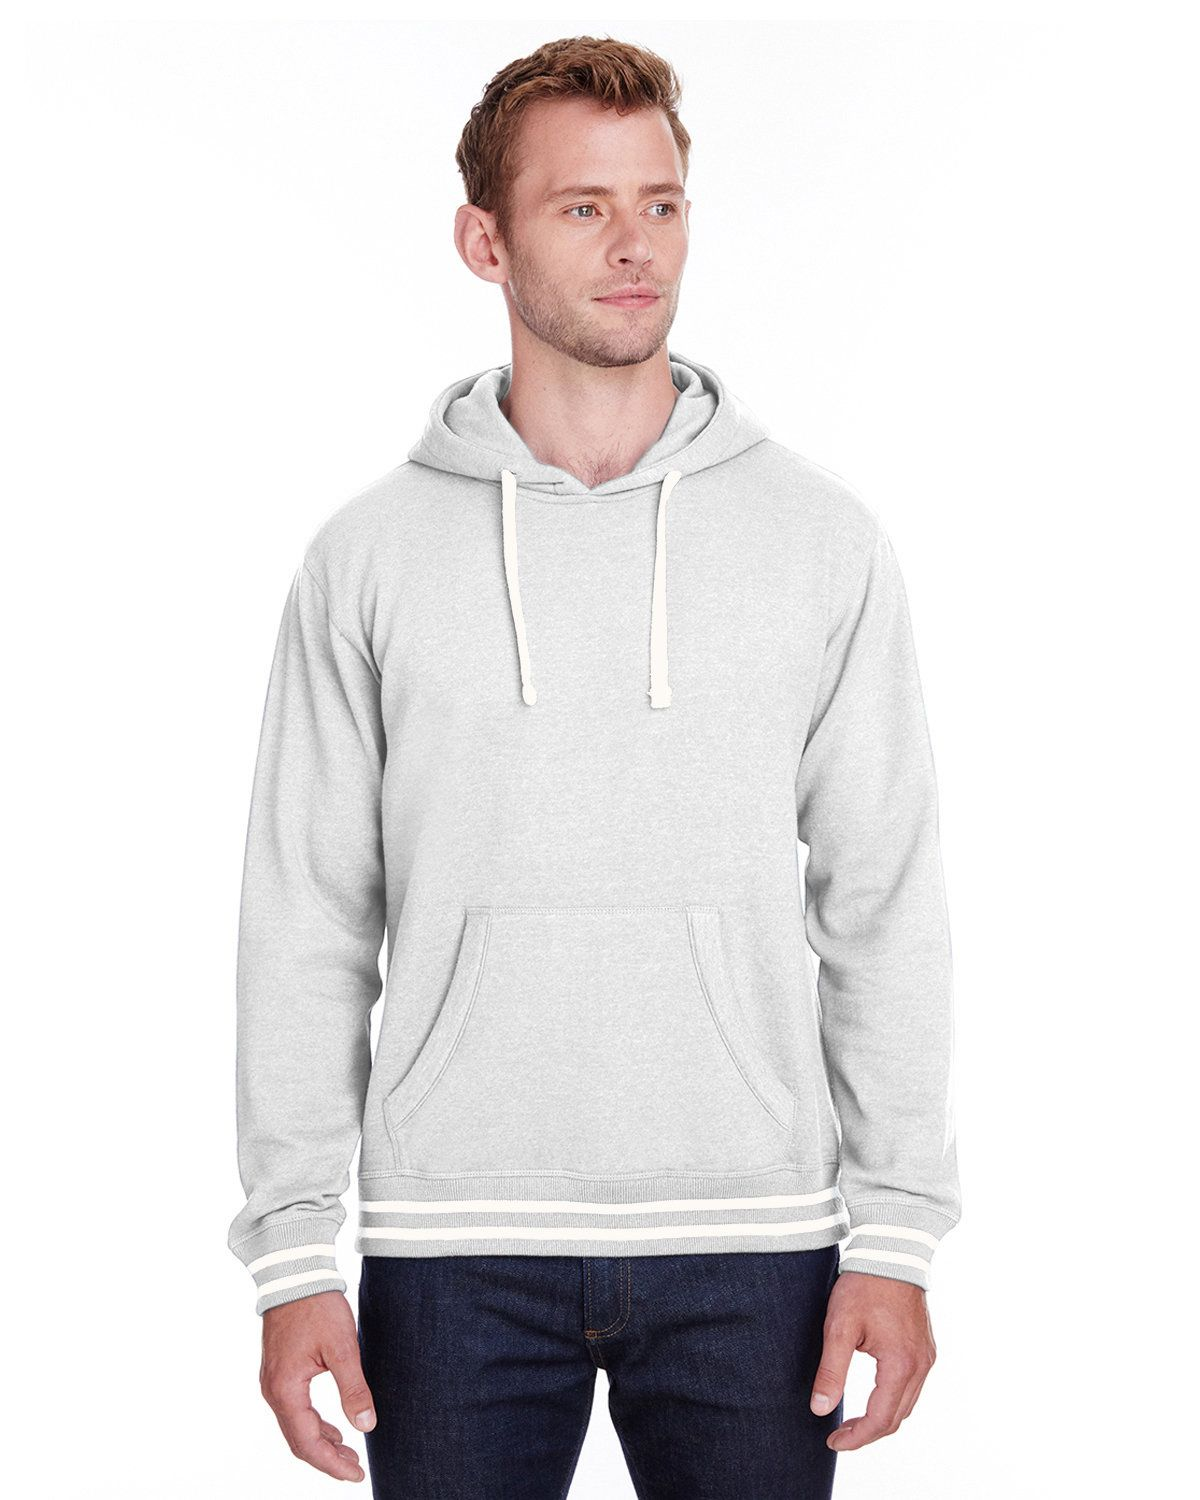 J America JA8649 Men's Relay Hooded Sweatshirt - Ash - S from J America